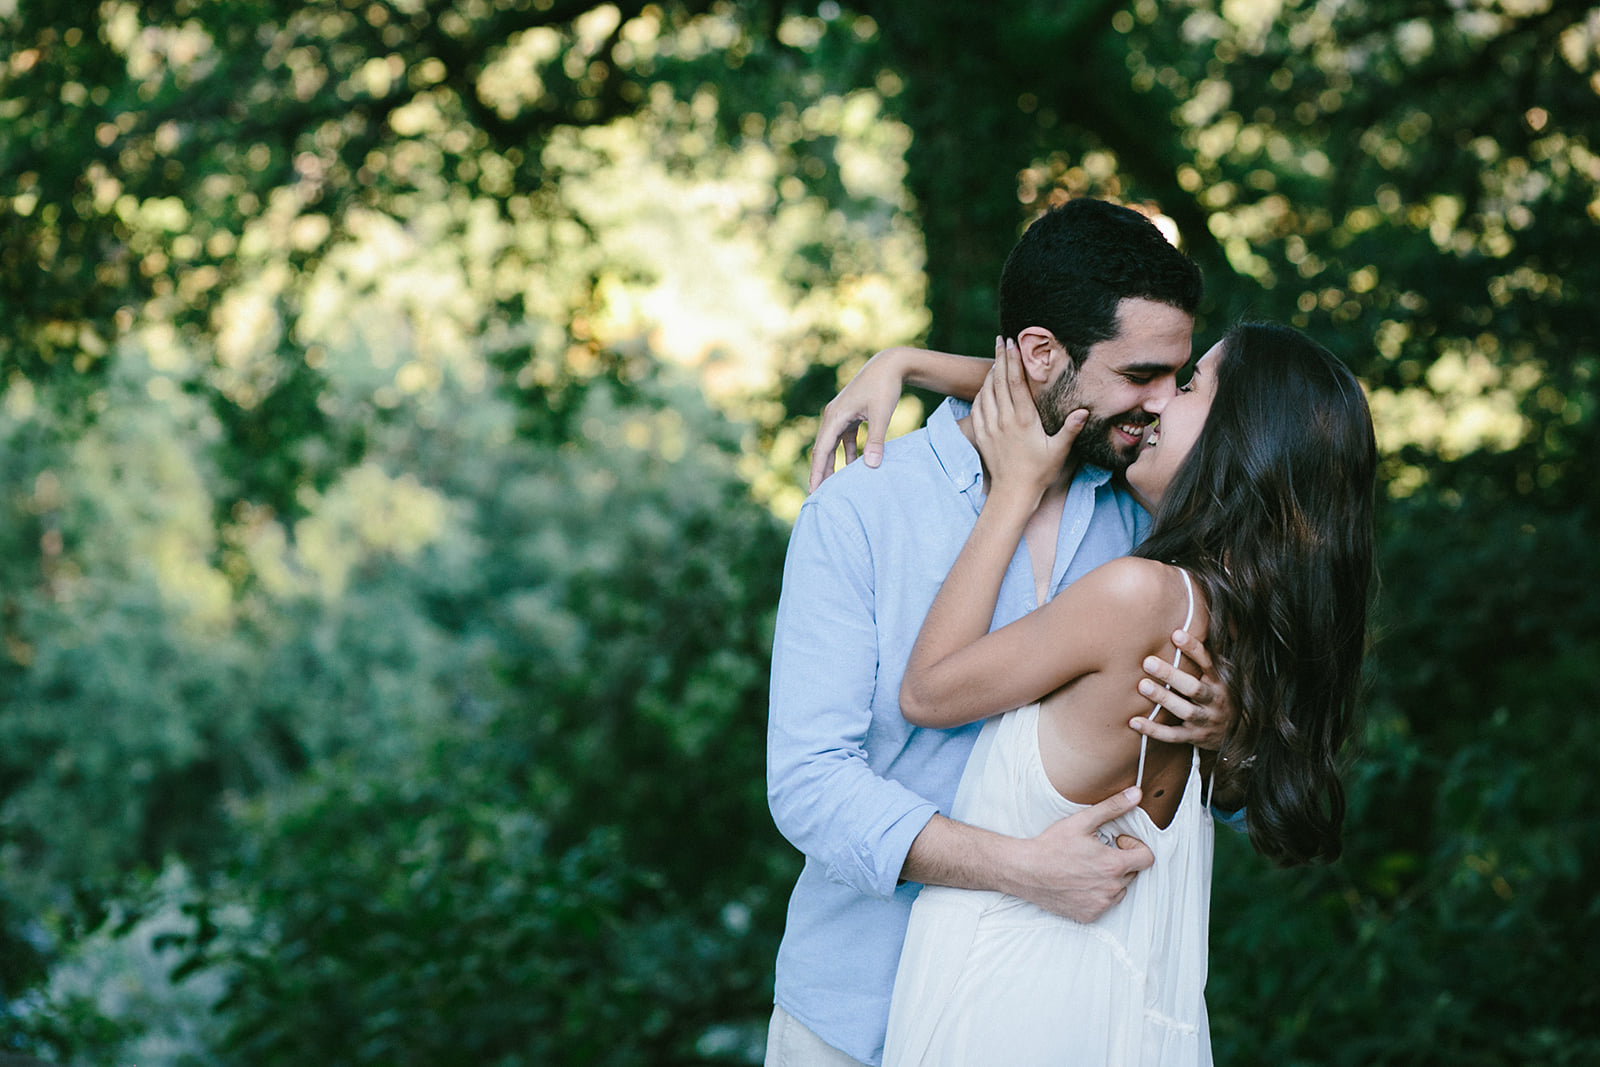 Porto Wedding Photographers. Destination wedding in Porto and the Douro Valley shot by Oceânica Photography.